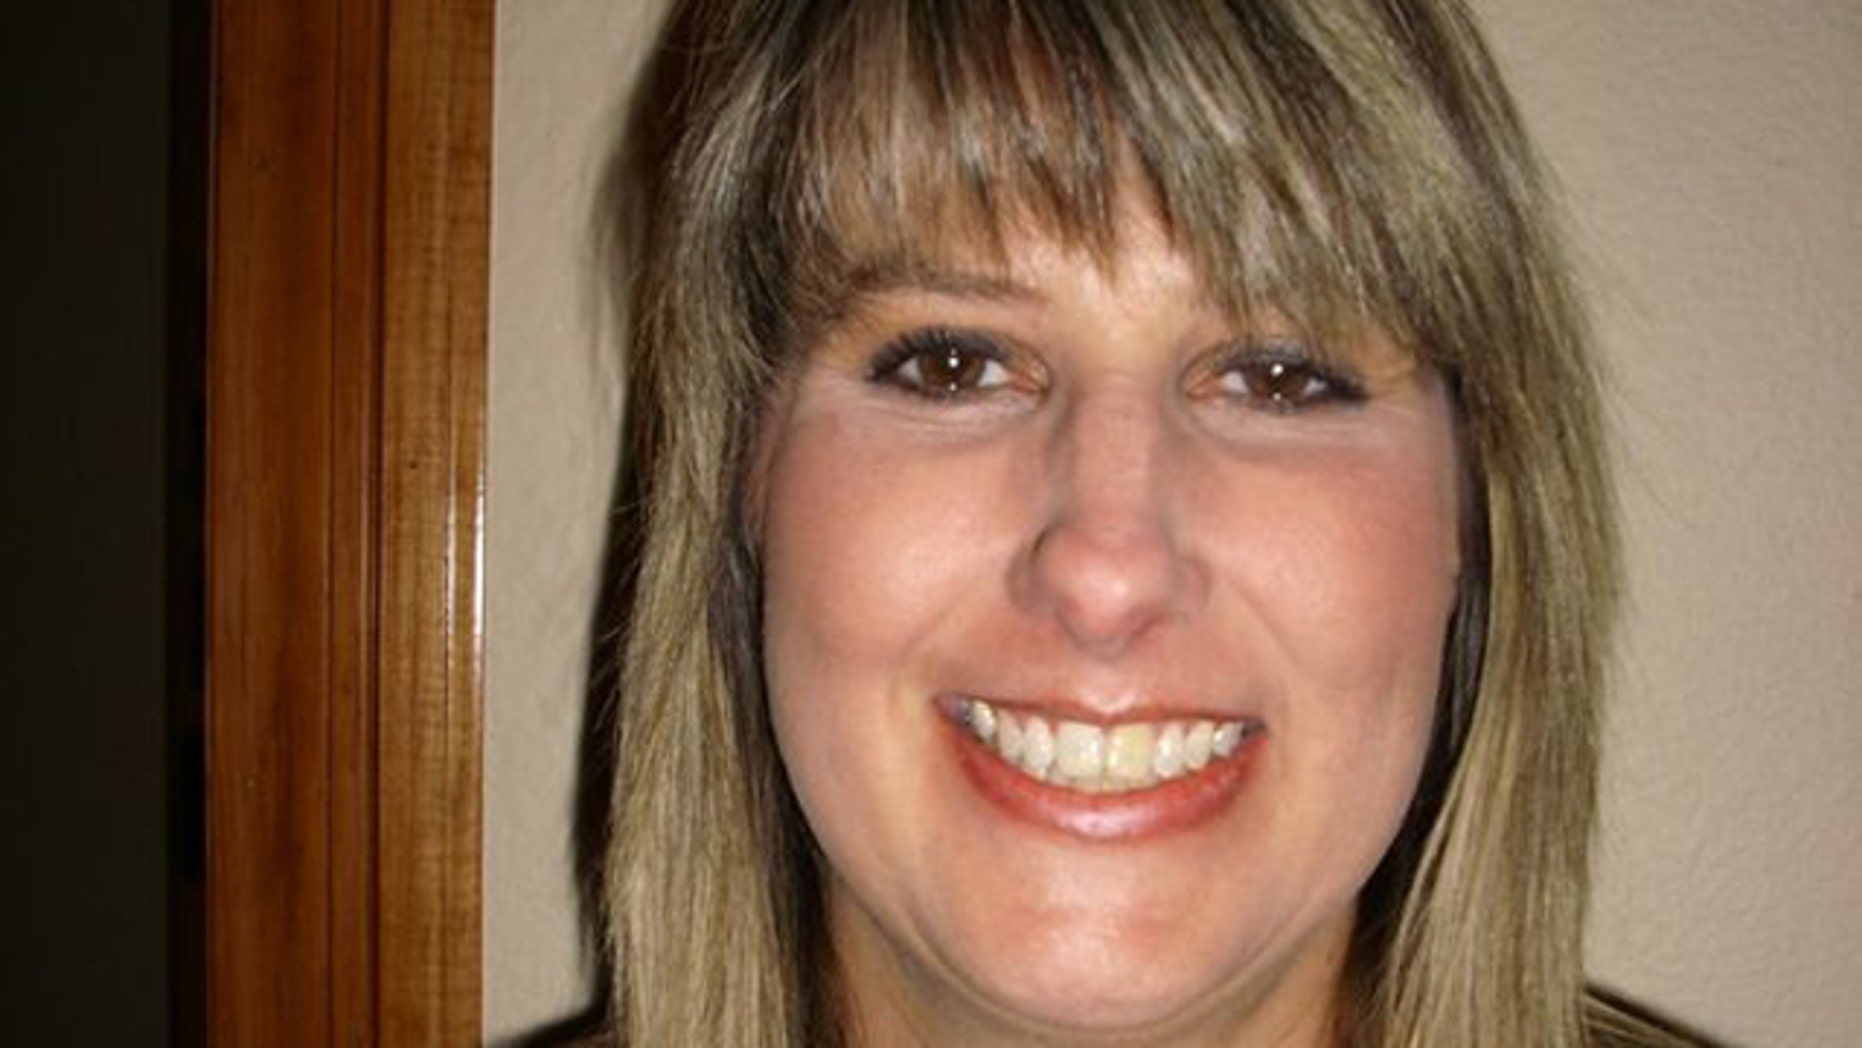 Dawna Natzke, 46, was last seen seen Dec. 21 leaving a Christmas party in Hot Springs Village.